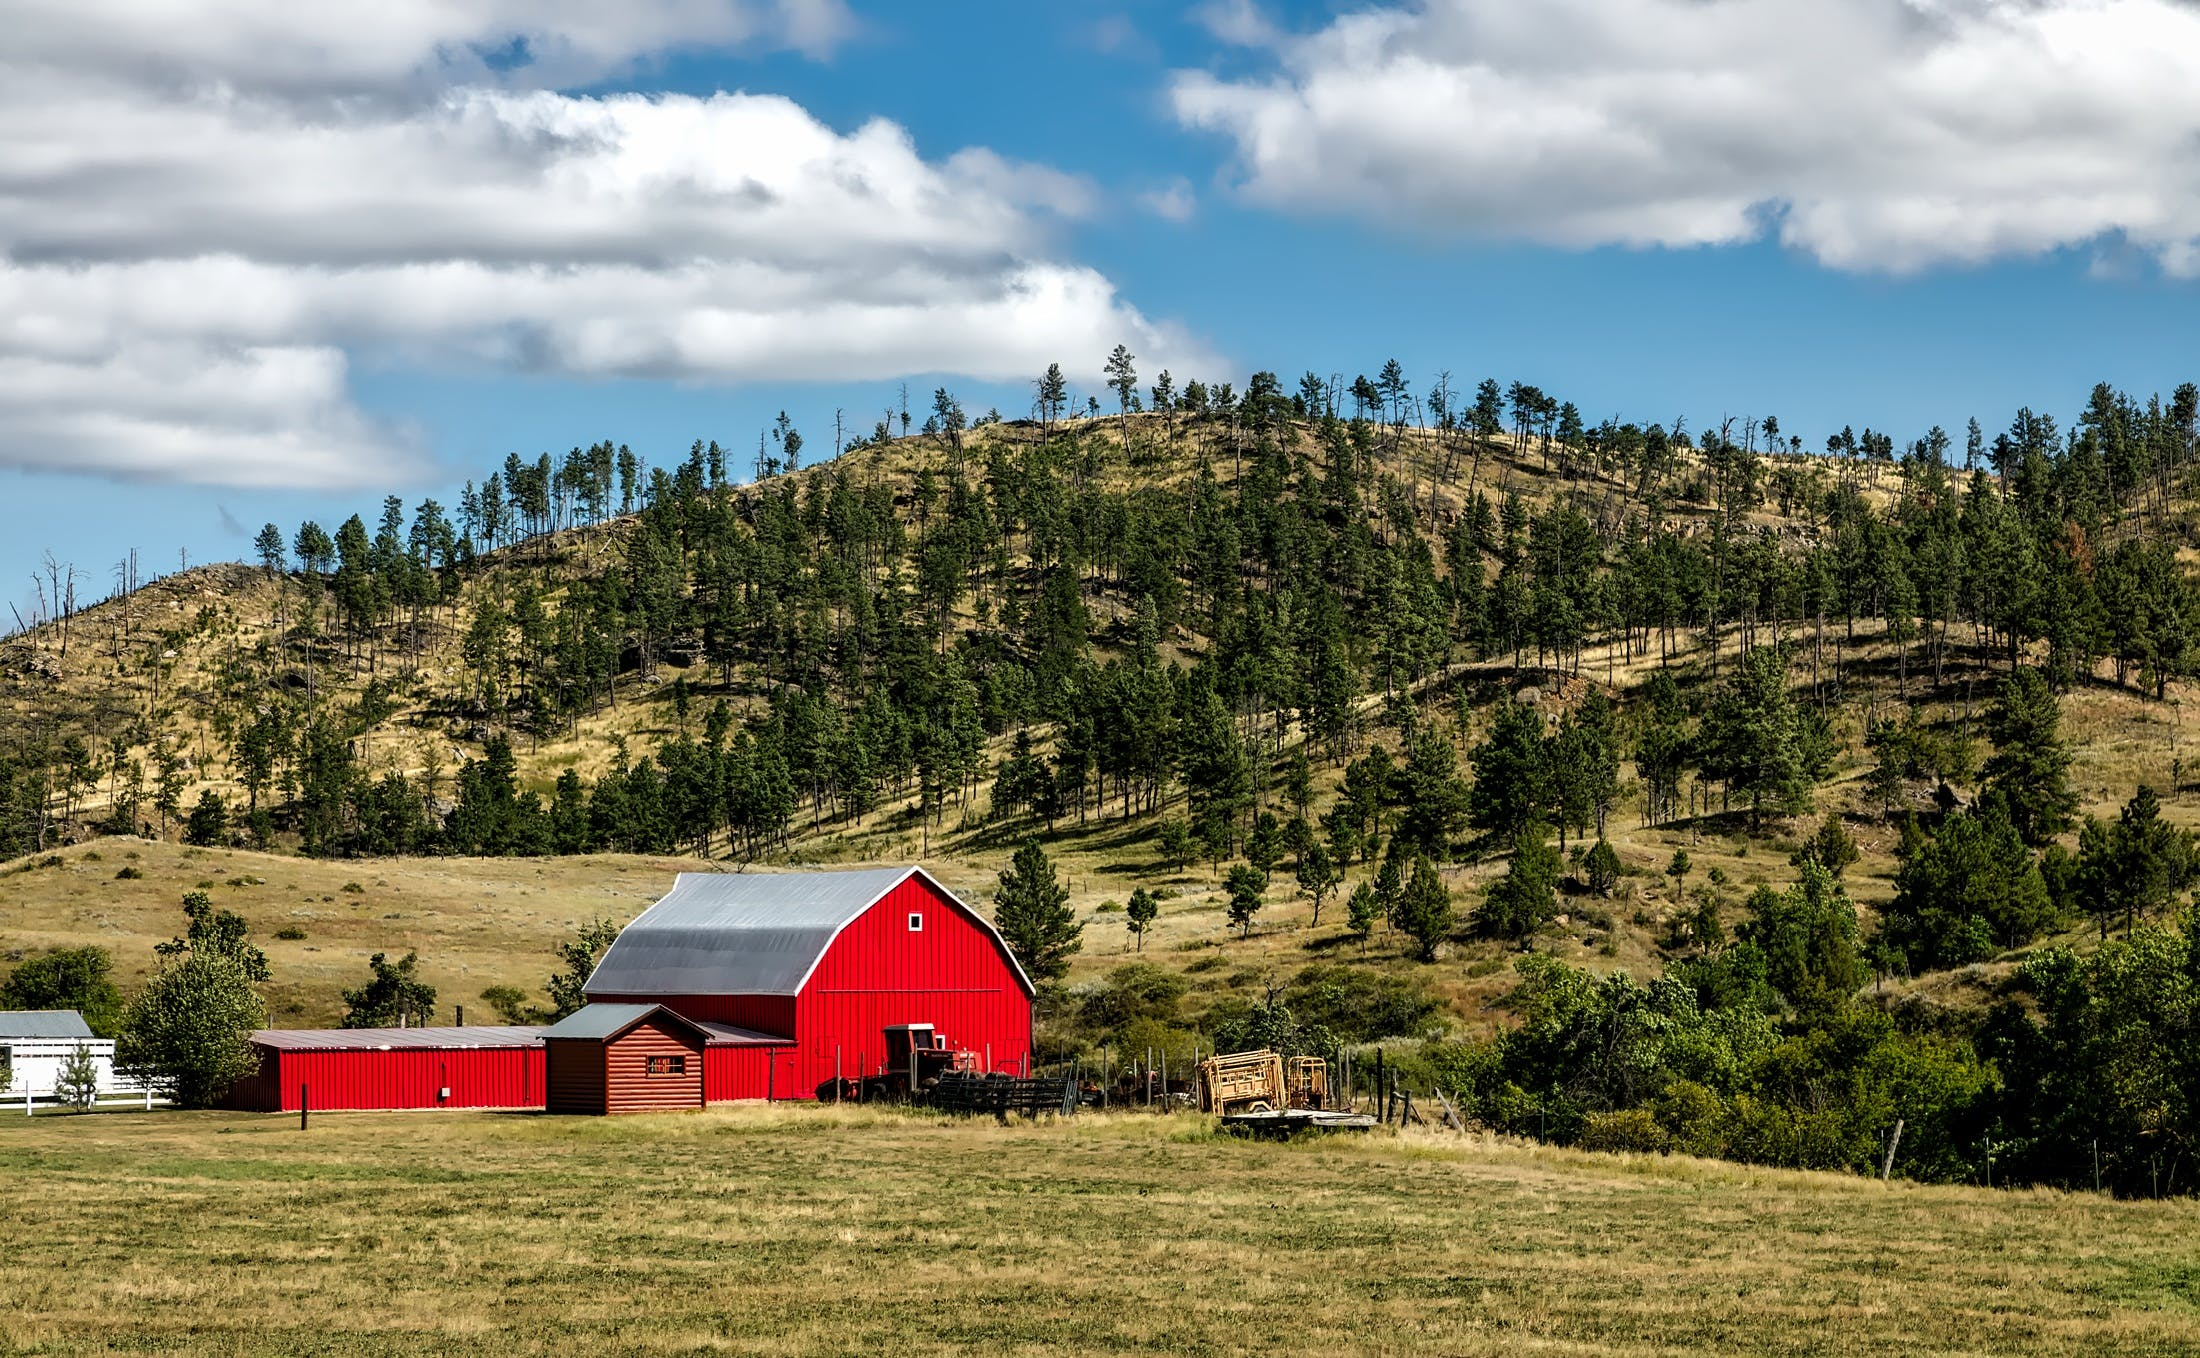 Red Wooden Shed on Farm Land